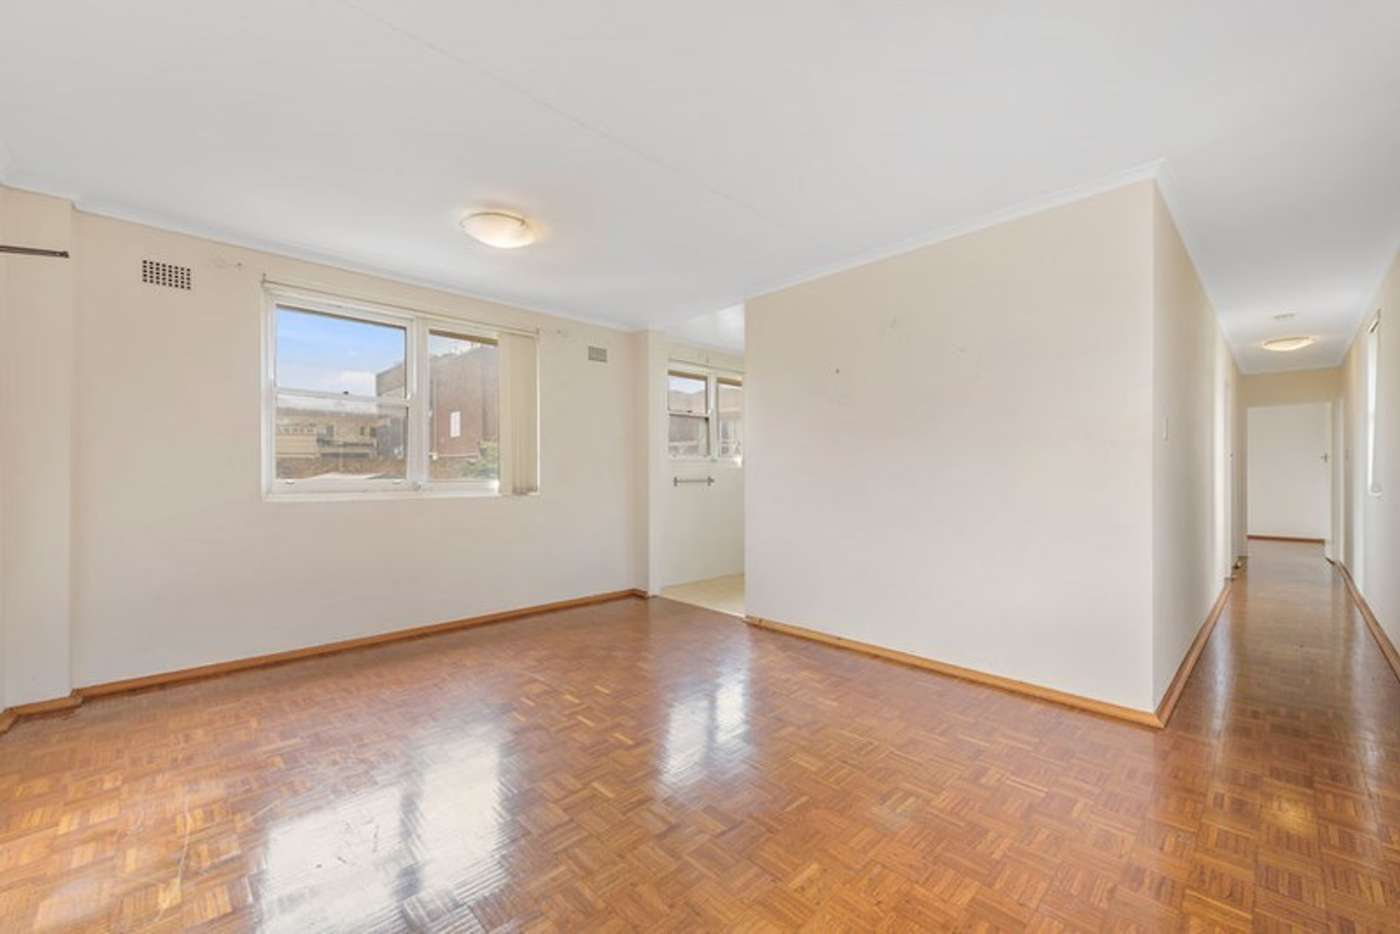 Main view of Homely other listing, 3/100 Carrington Rd, Waverley NSW 2024